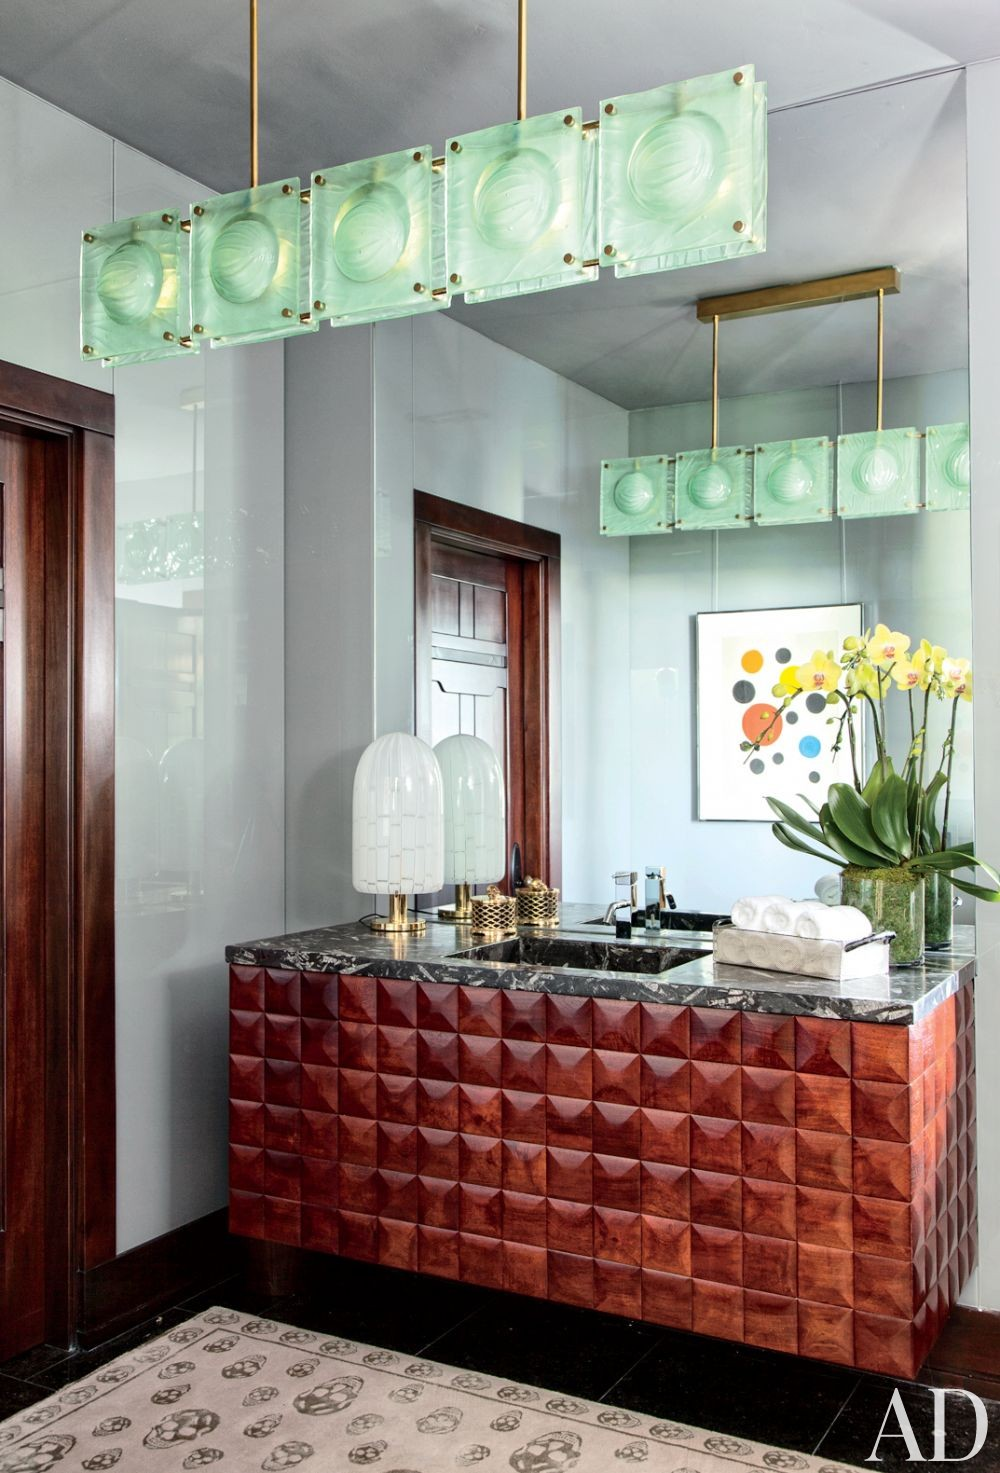 Modern Bathroom by Nancy Heller in Los Angeles, California